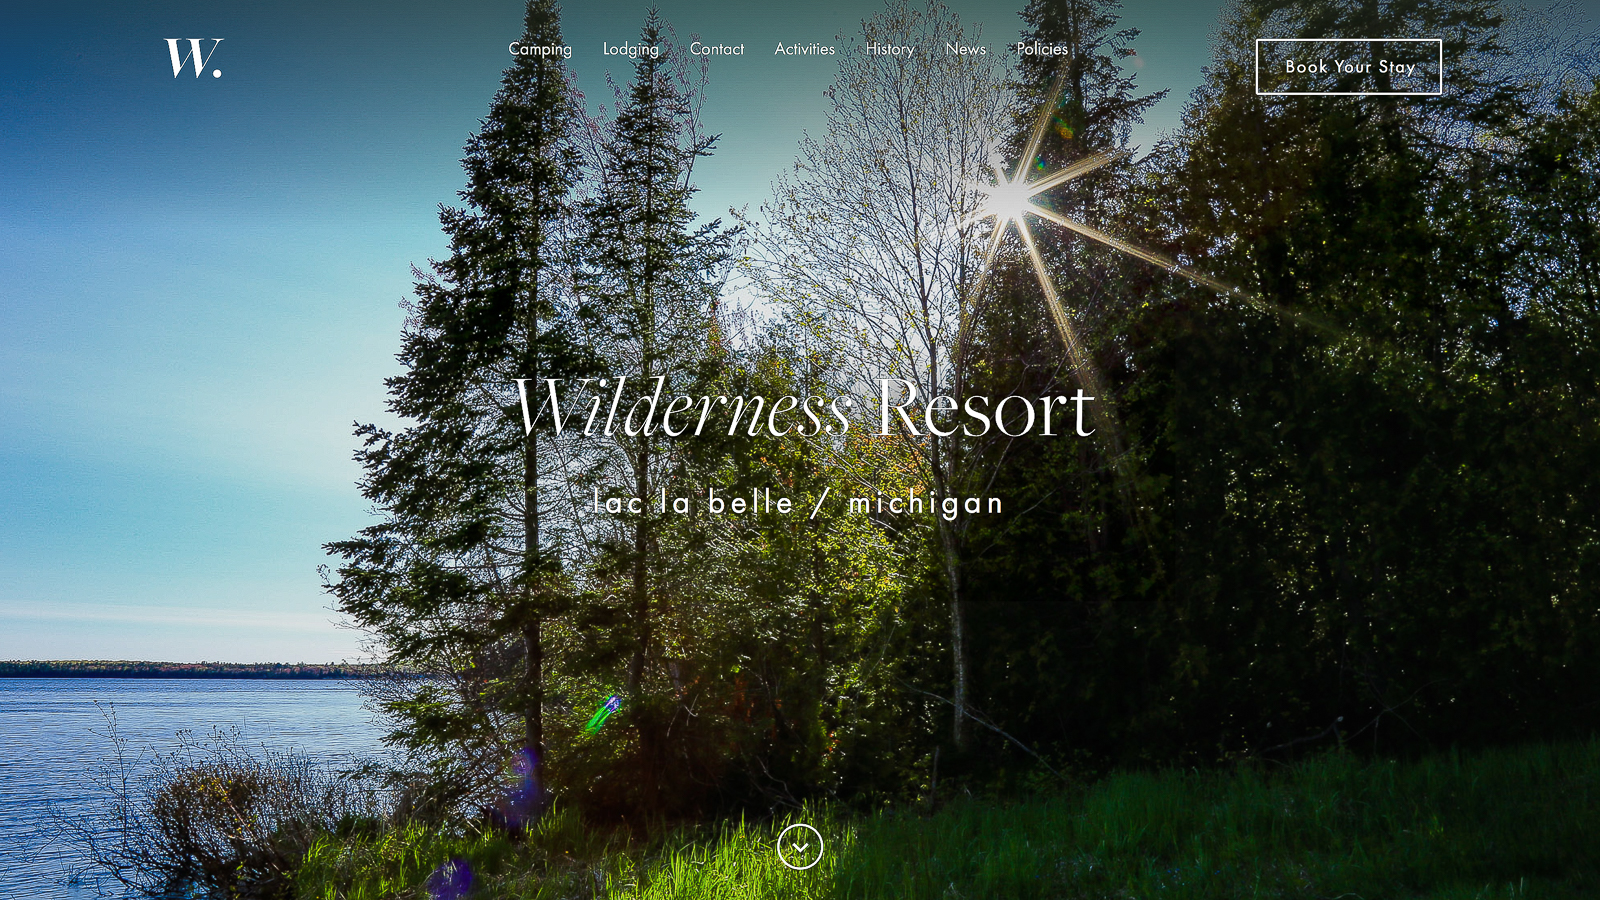 New Wilderness Resort Website Homepage